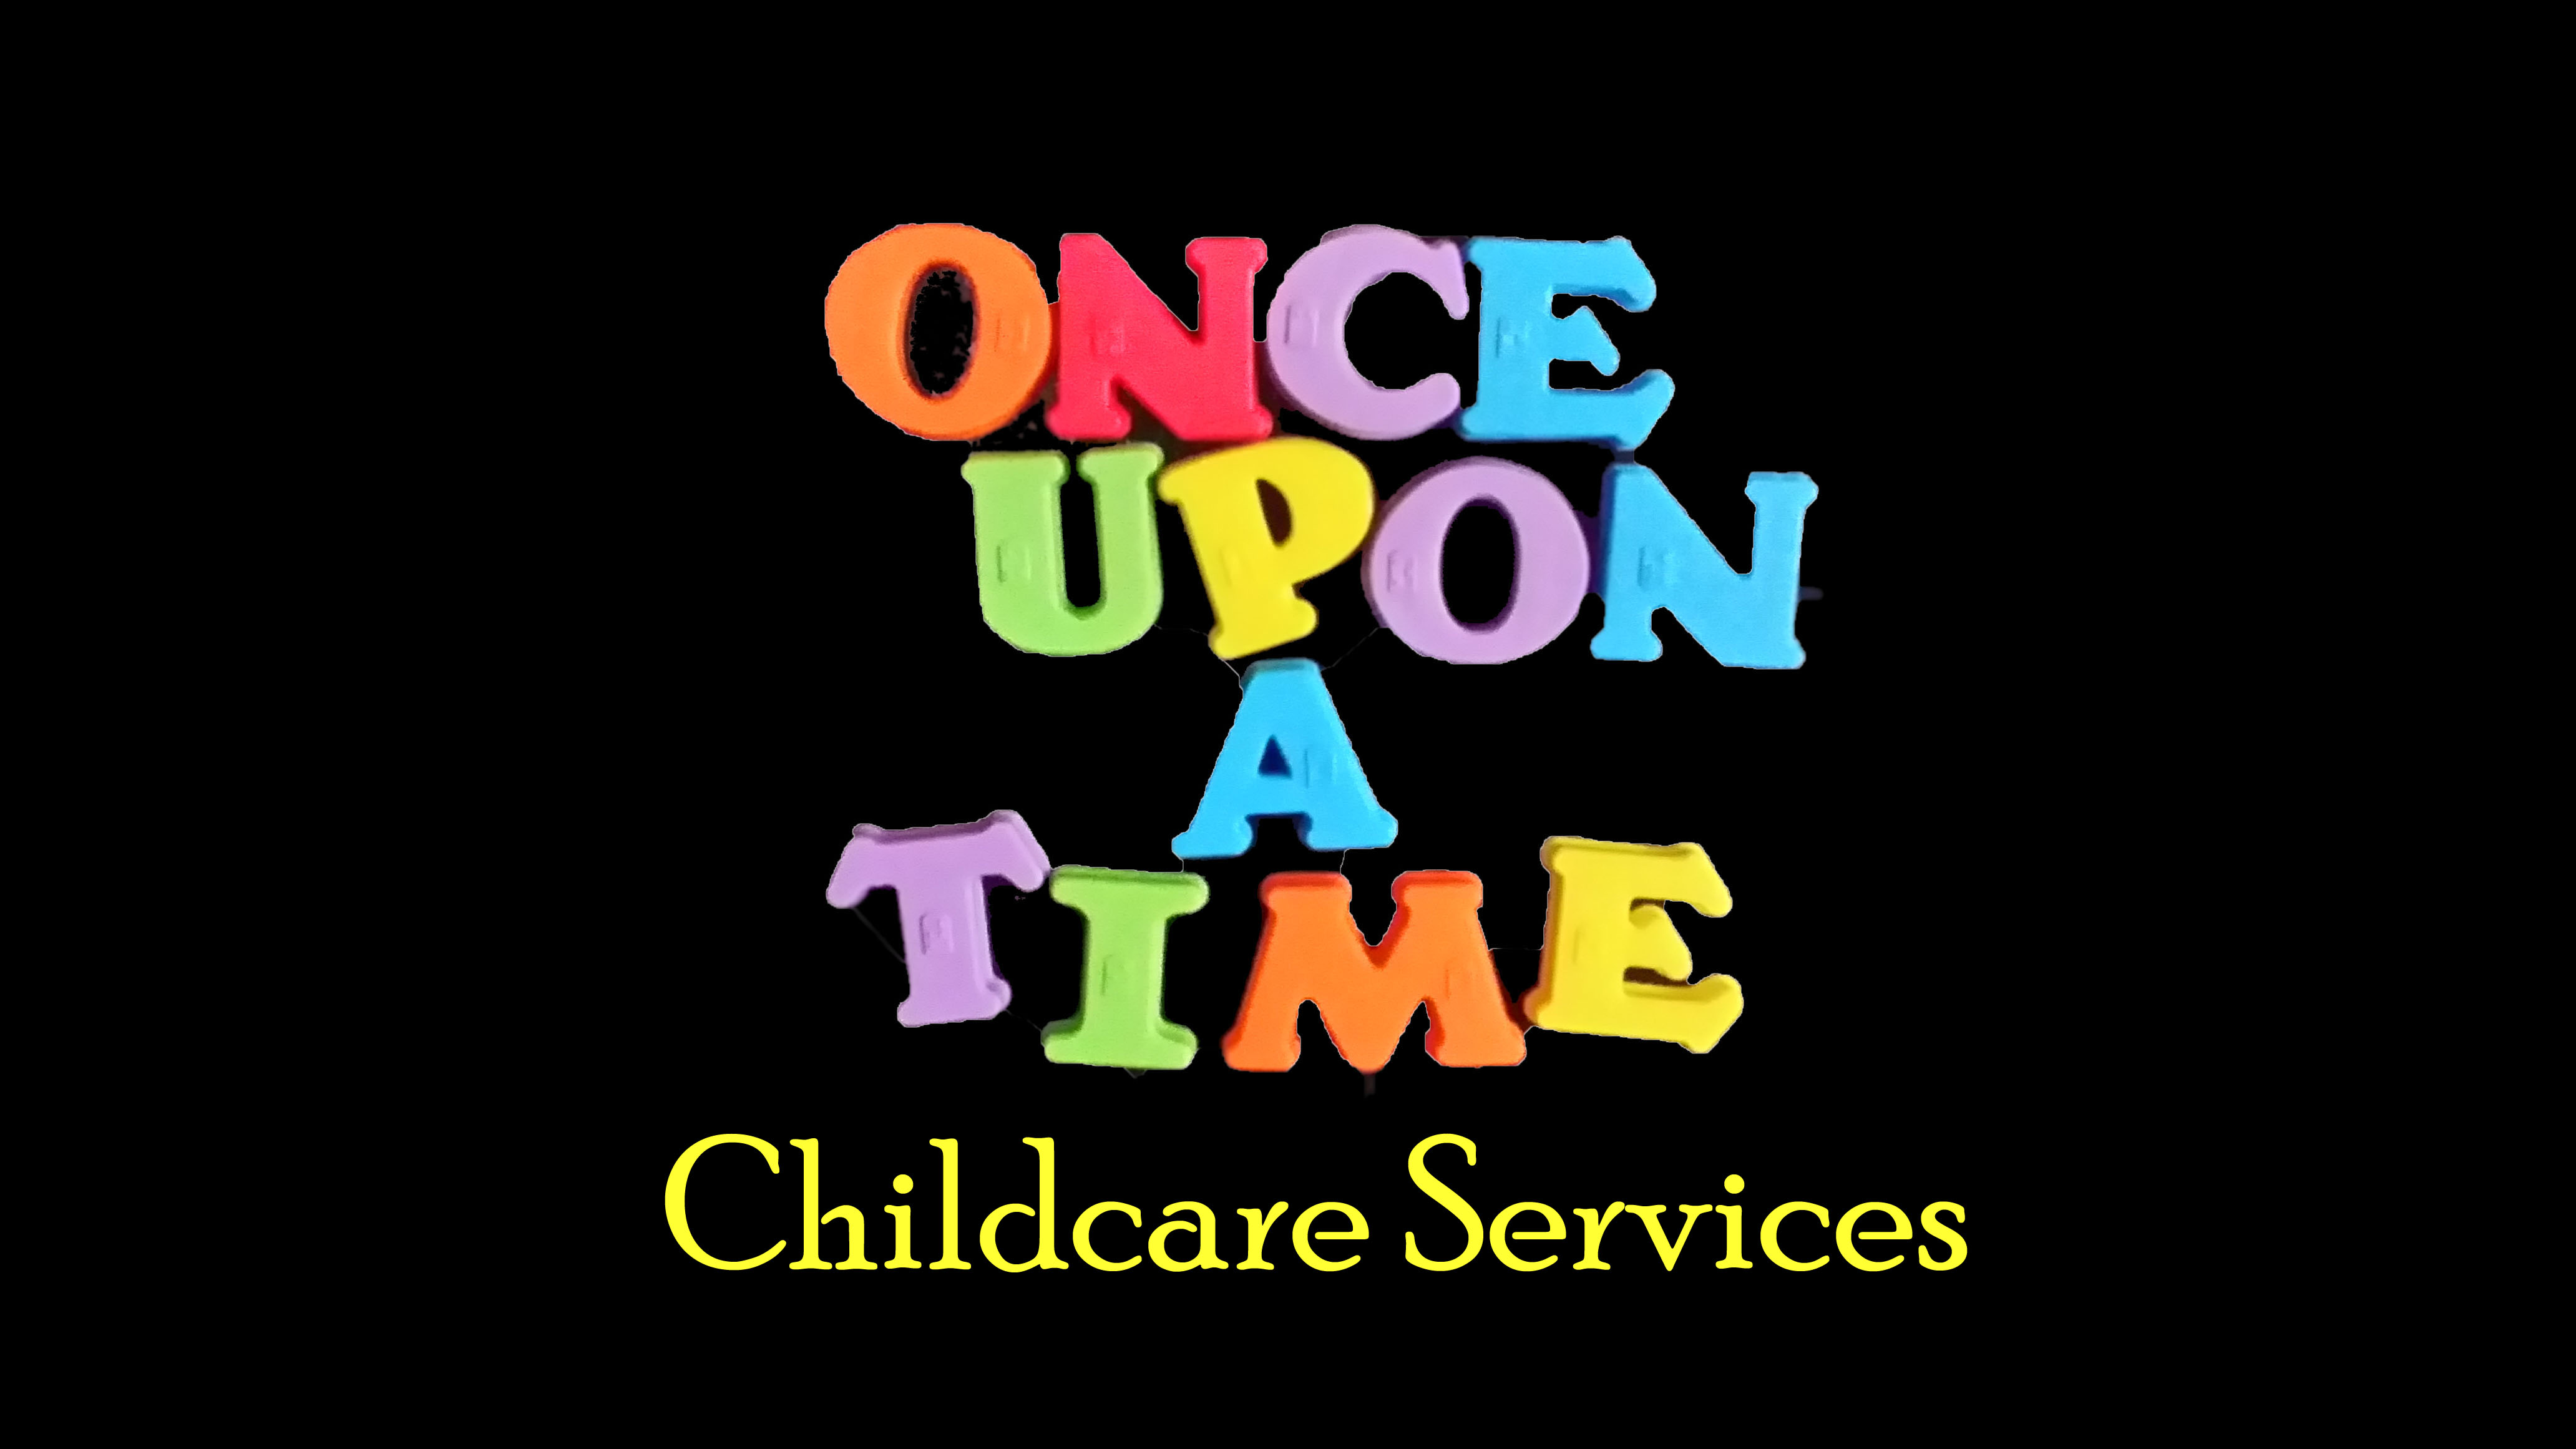 Once Upon a Time Childcare